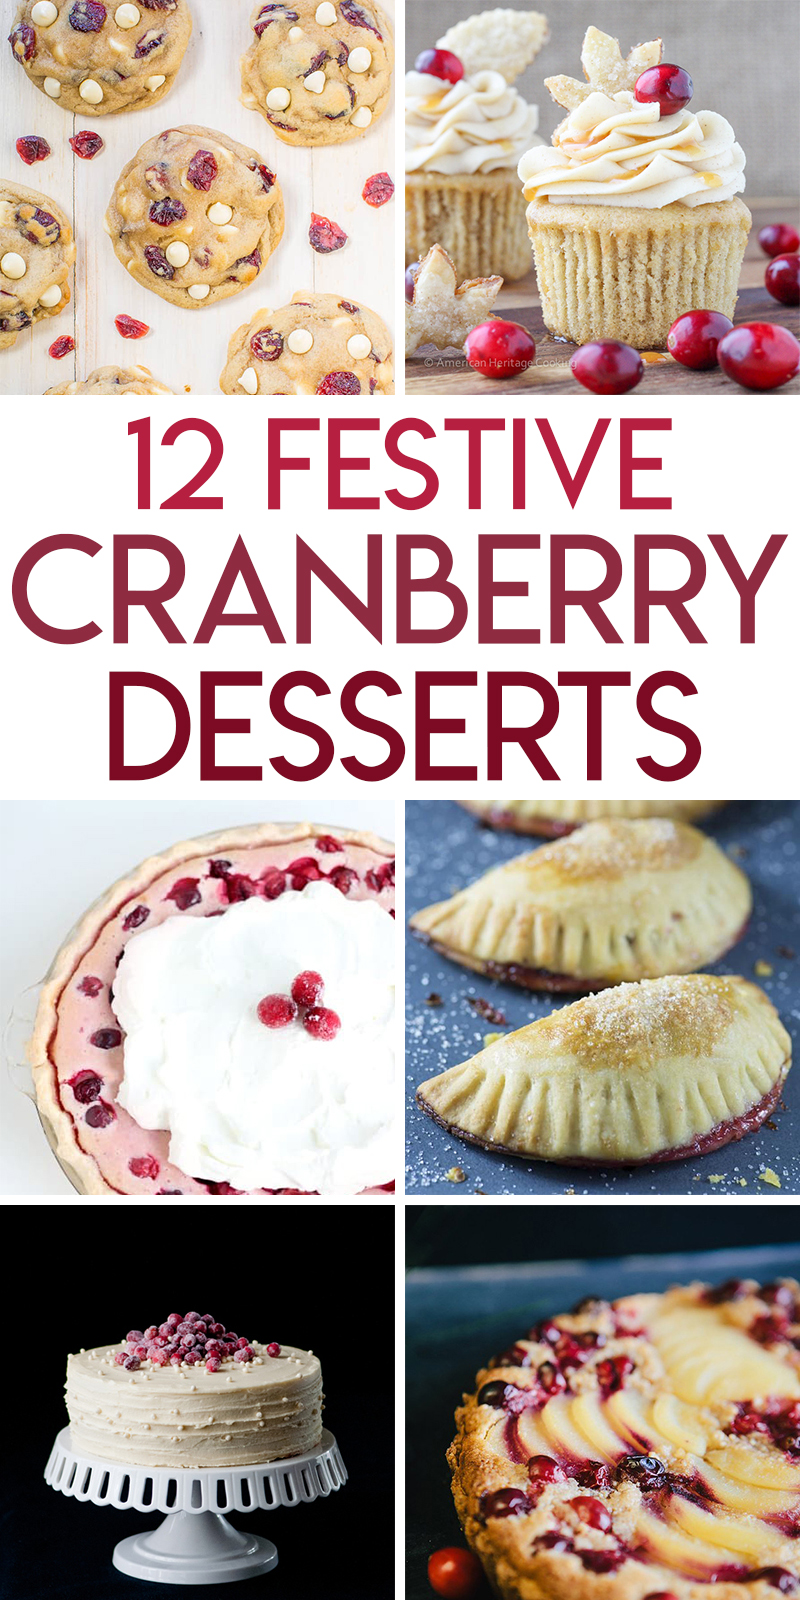 12 festive cranberry desserts for the holidays